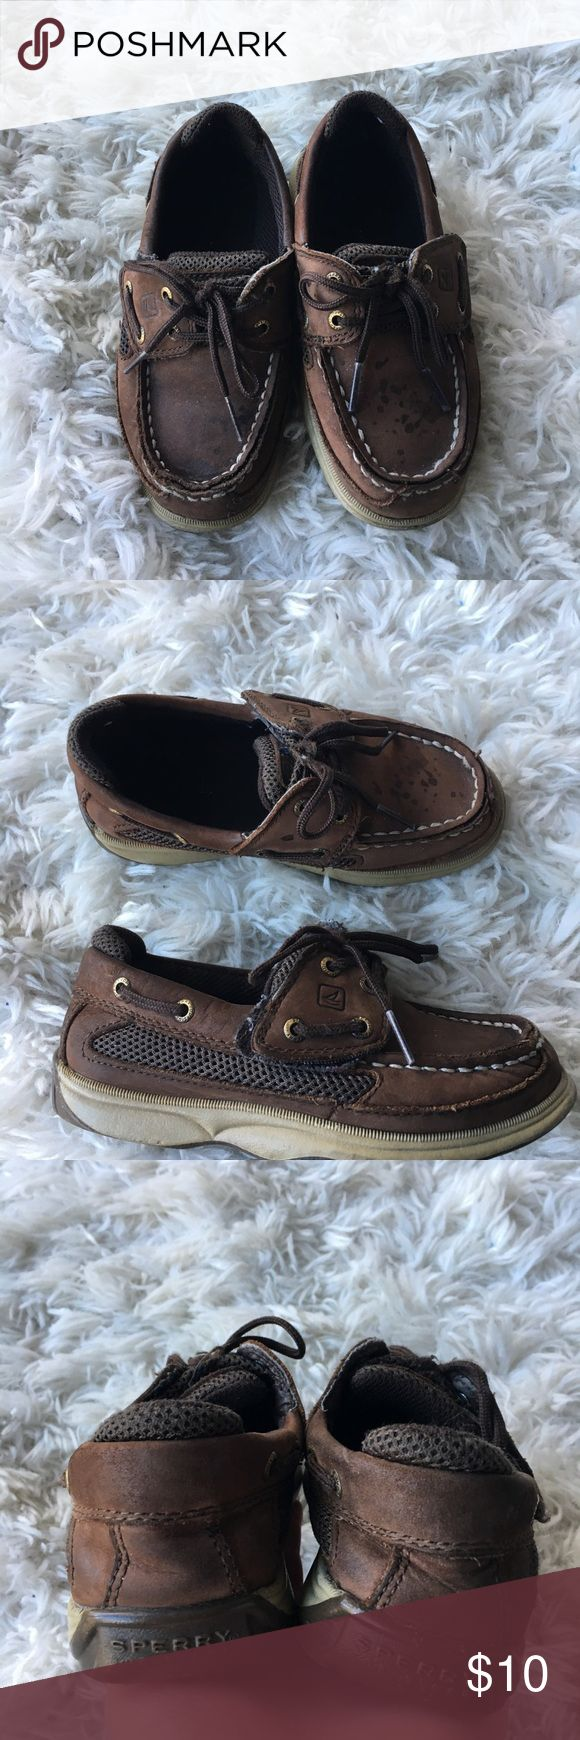 Toddler Sperry Shoes These brown toddler sperrys are in average used condition. They definitely show some wear but have a lot of wear left. They have some spots that would probably come off with a little TLC. Velcro closure for easy on and off. The size is no longer visible, but they're a 10. Save on ✈️SHIPPING✈️and 🎁BUNDLE! I even give a discount on 3 or more regularly priced item bundles. I always accept reasonable offers with the offer button! 🚫❌Lowball offers please! Sperry Top-Sider…